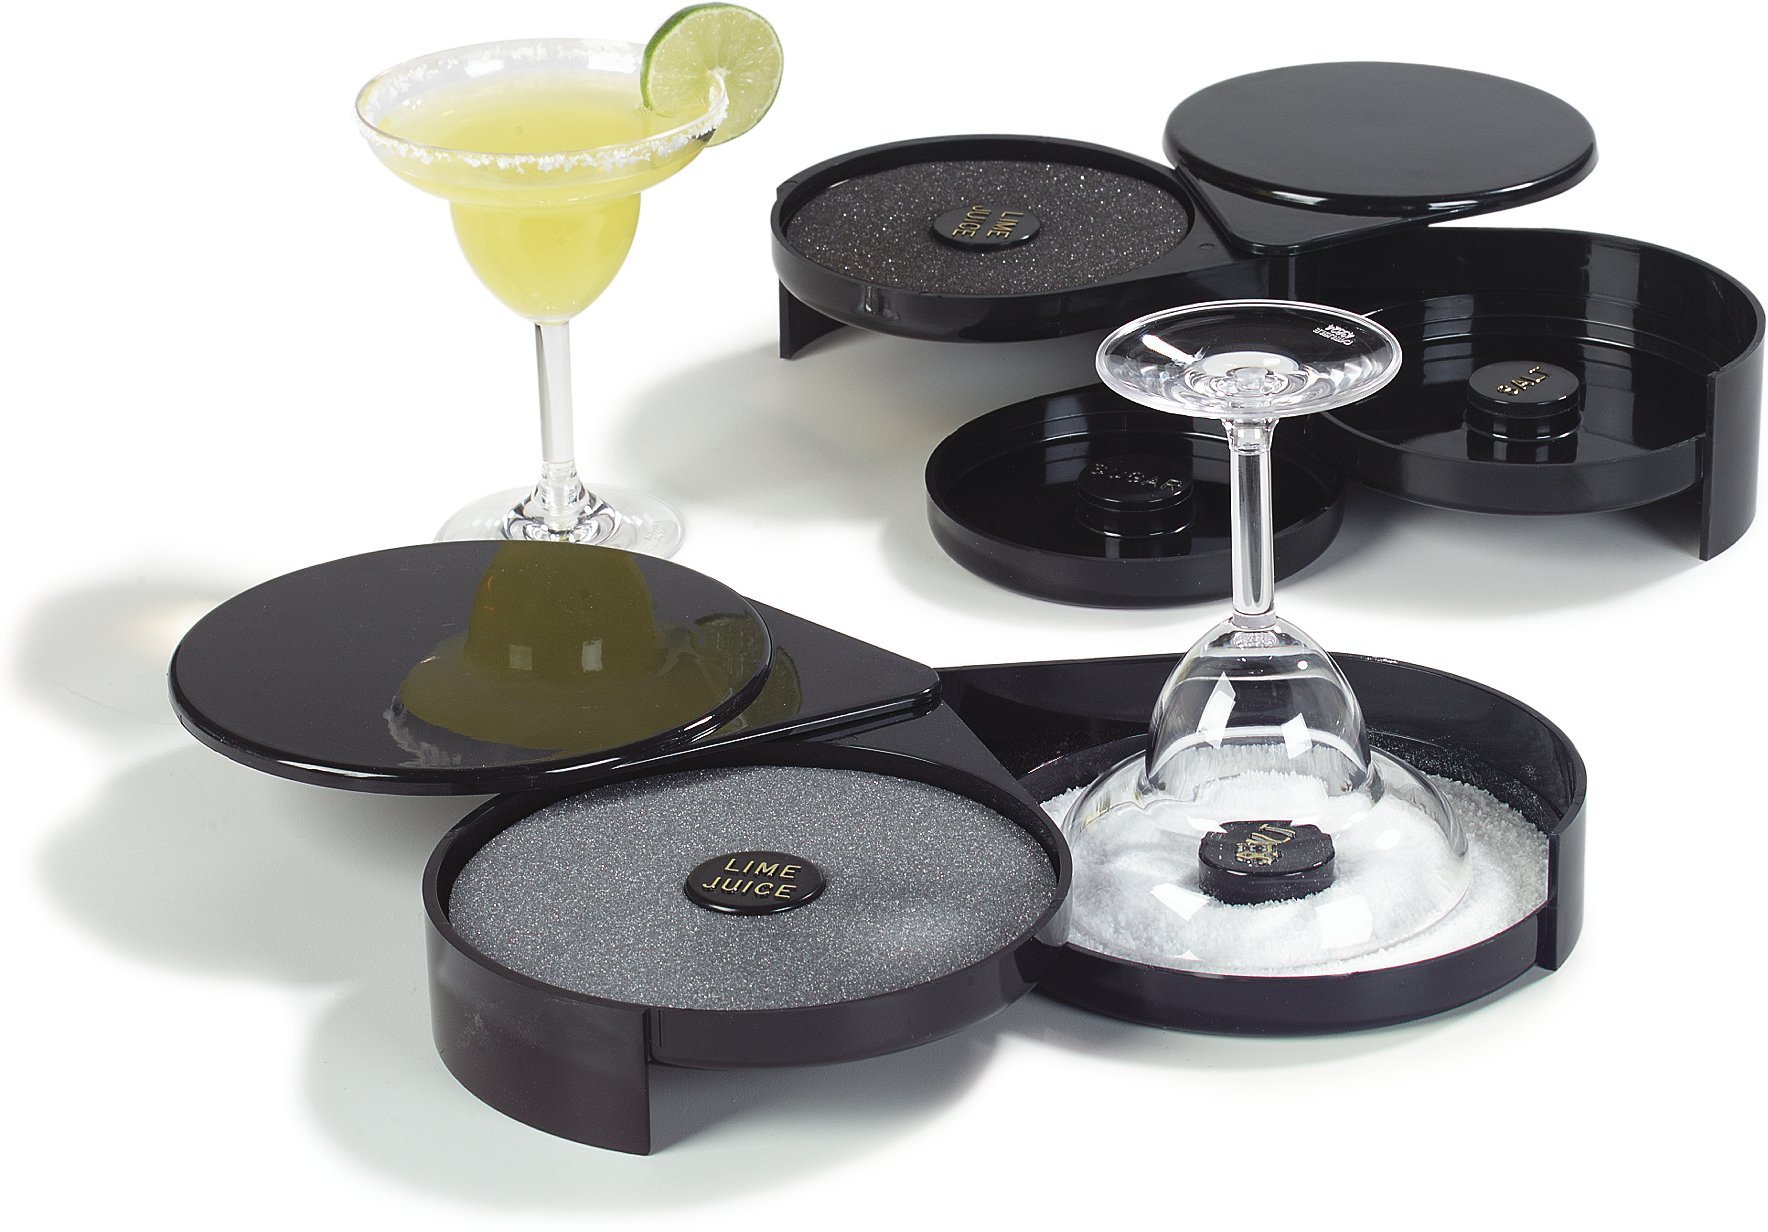 Carlisle GR1003 2-Tier Acrylic Margarita And Cocktail Glass Rimmer, Black (Case of 12) by Carlisle (Image #3)